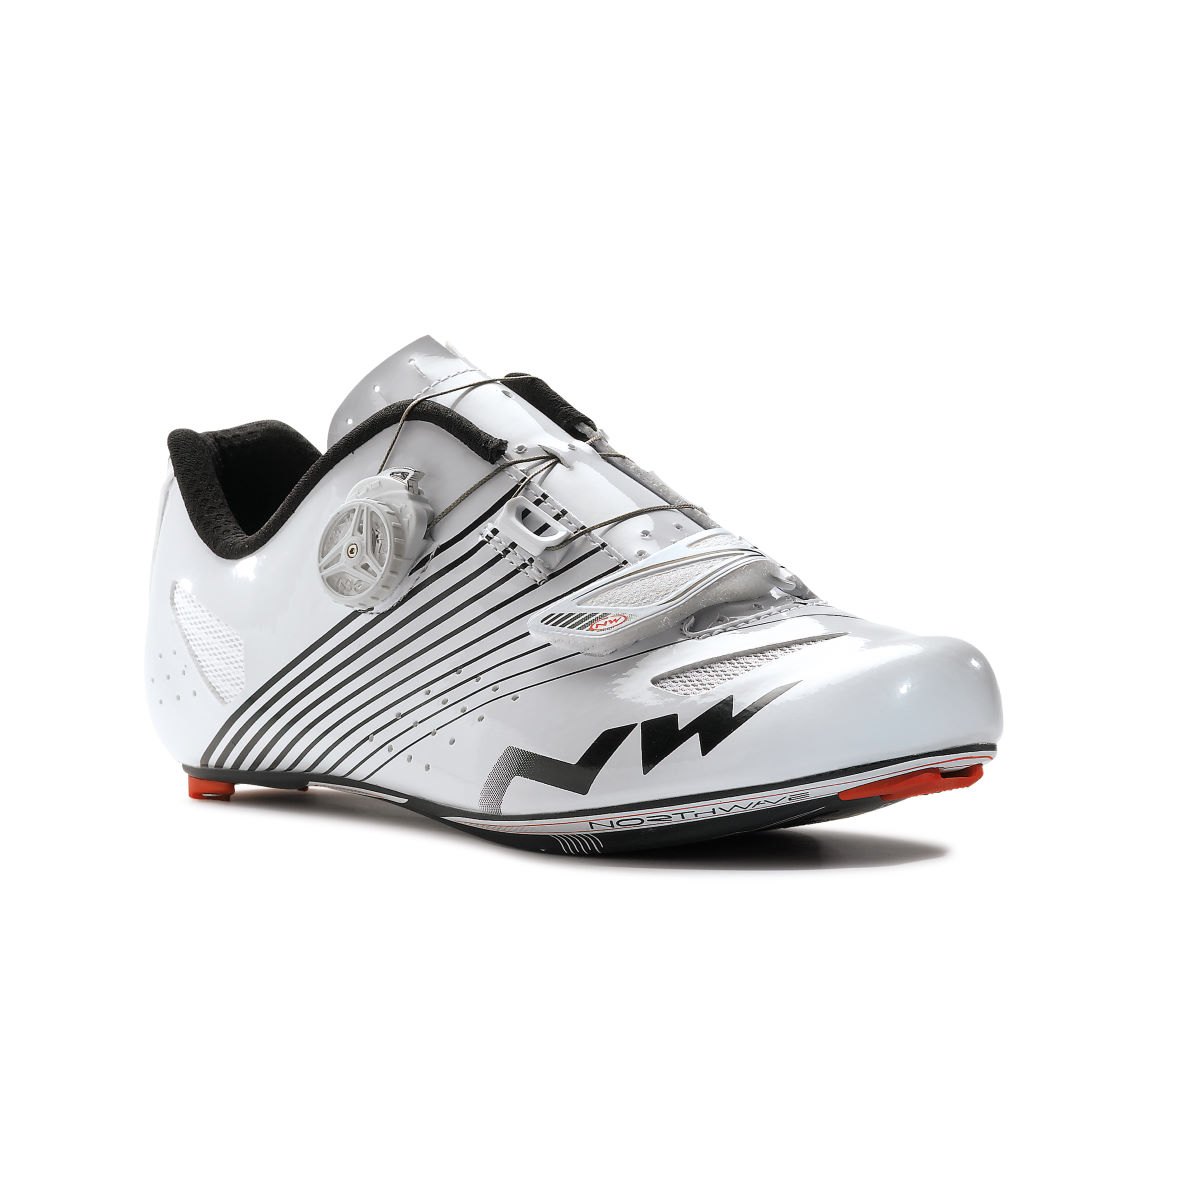 Northwave Torpedo Plus Road Shoes - 47 White   Road Shoes